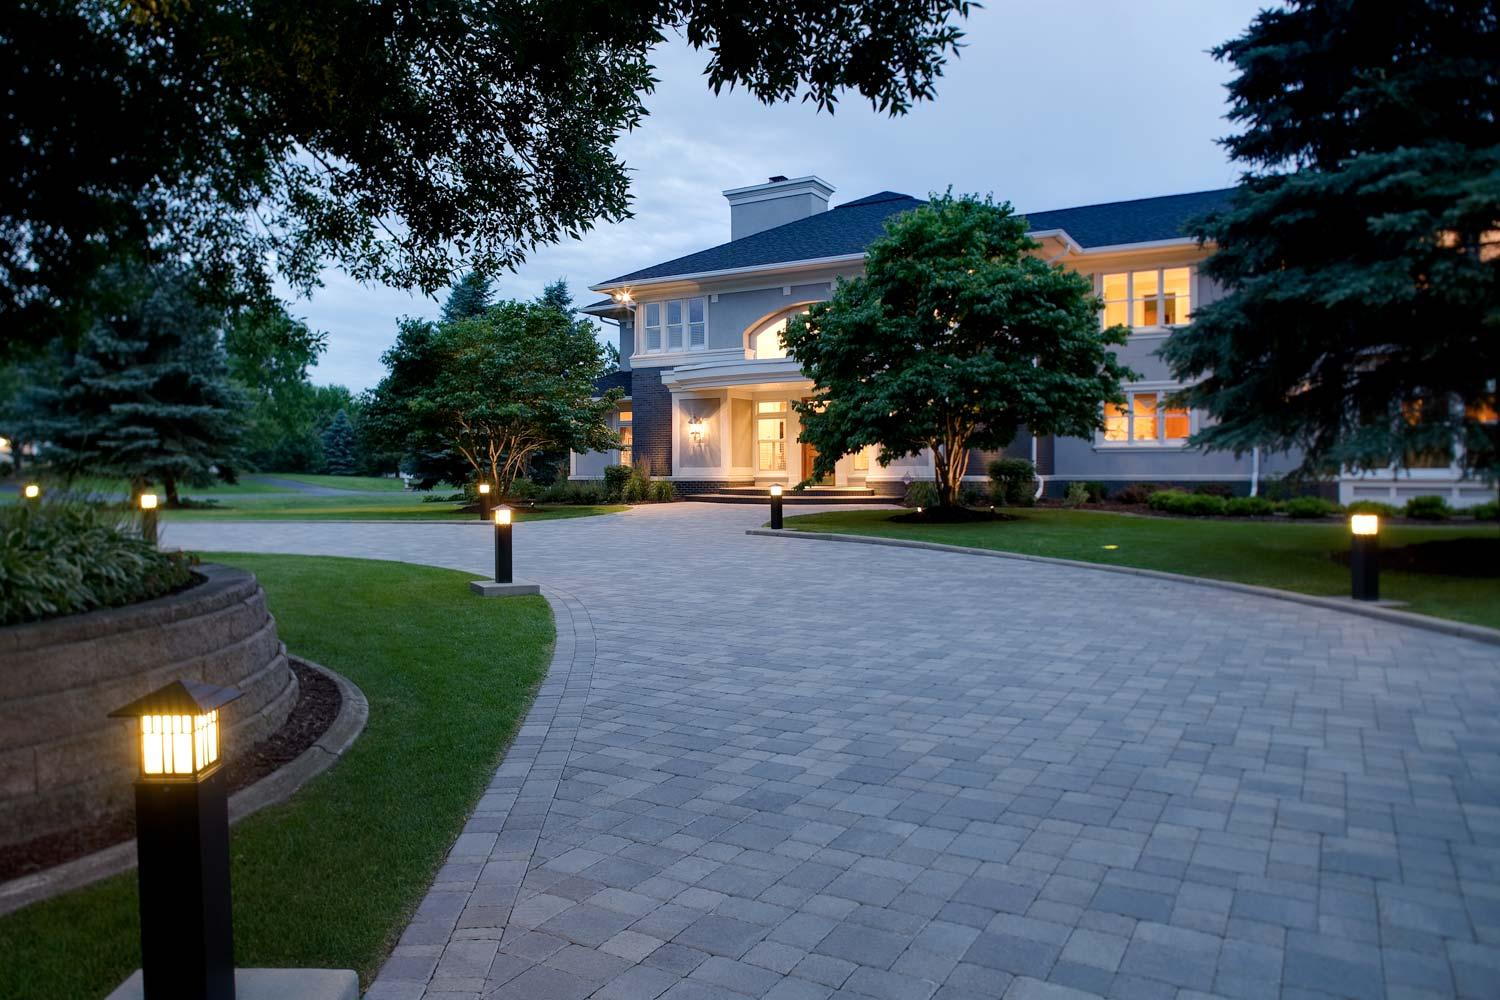 Elegant curving paver driveway flanked by tower lights